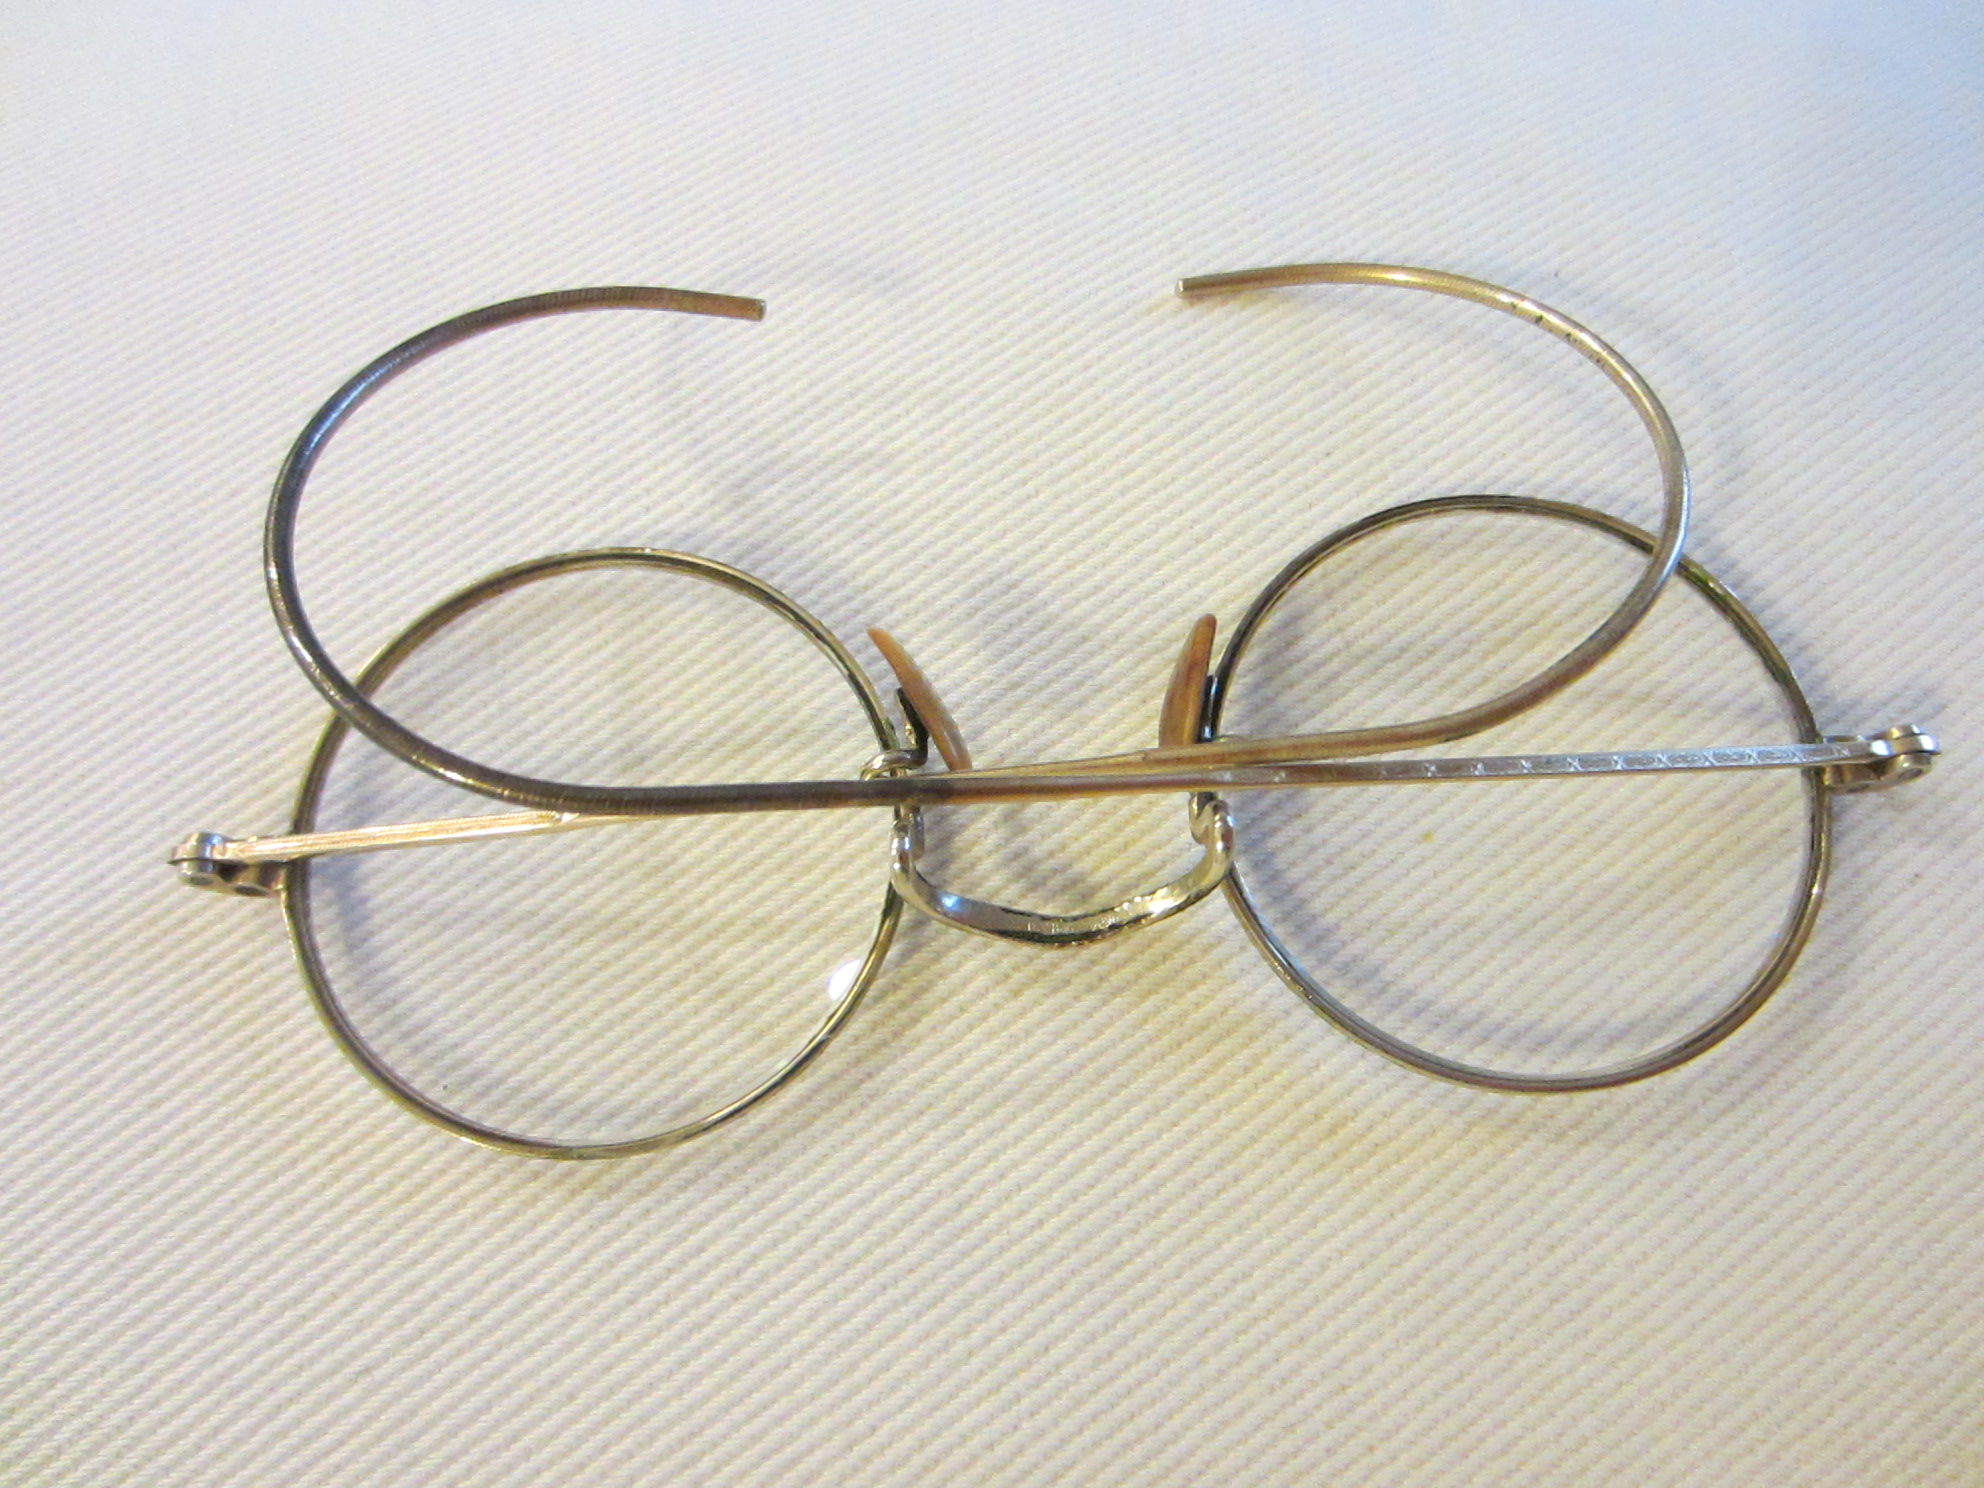 Vintage Eyeglass Frame Restoration : Vintage Retro Eyeglass For Sale Antiques.com Classifieds